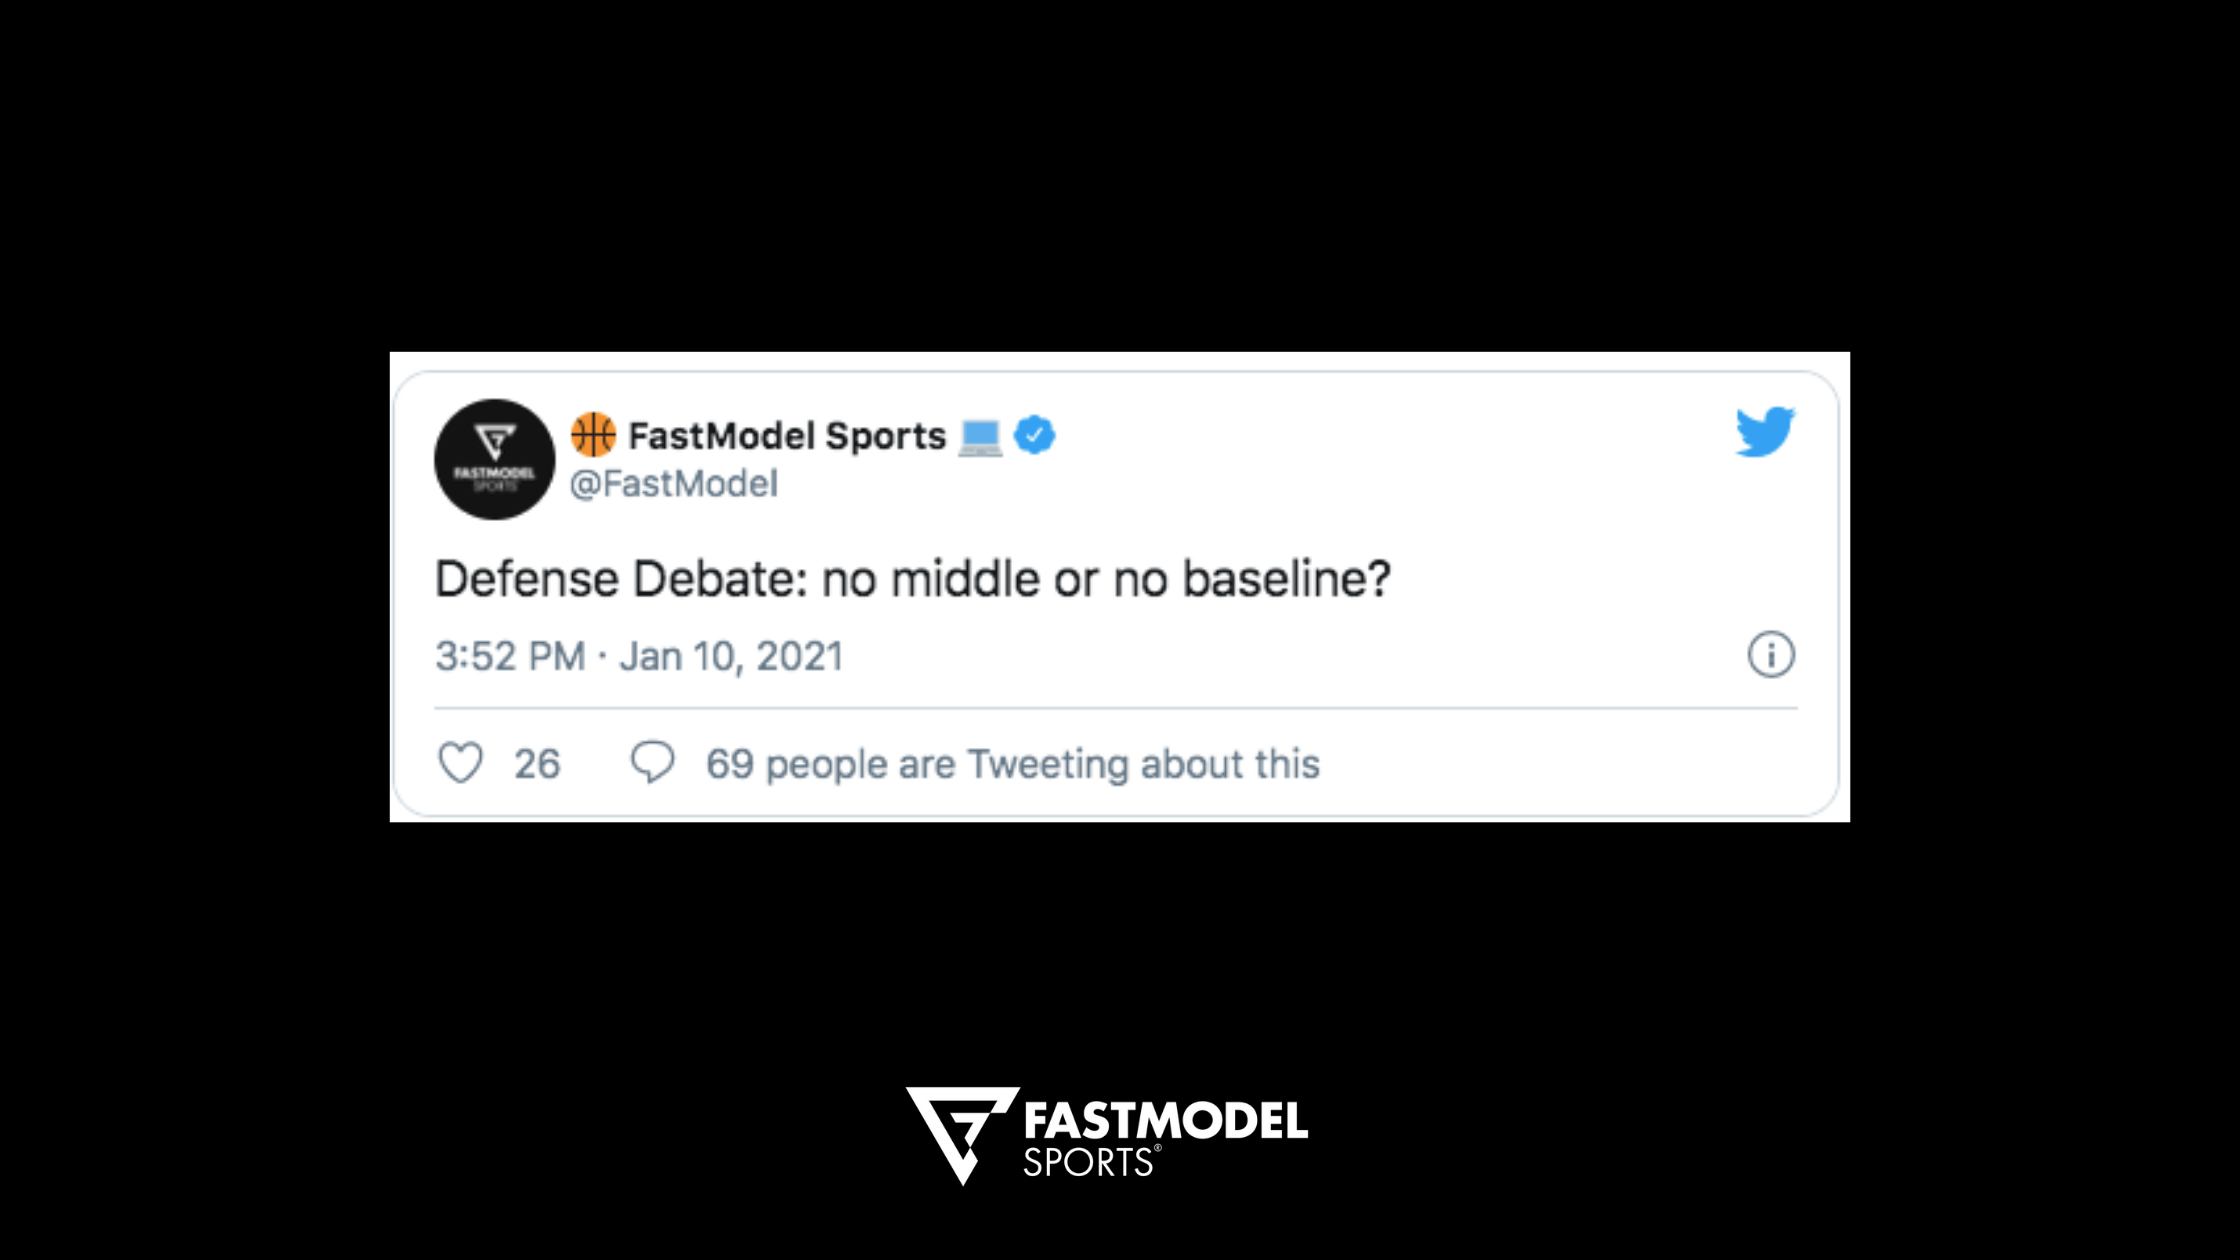 defense, basketball defense, defense concepts, middle vs baseline, basketball philosophy, coaching philosophy, basketball, coaching, FastModel Sports, FastDraw, Twitter